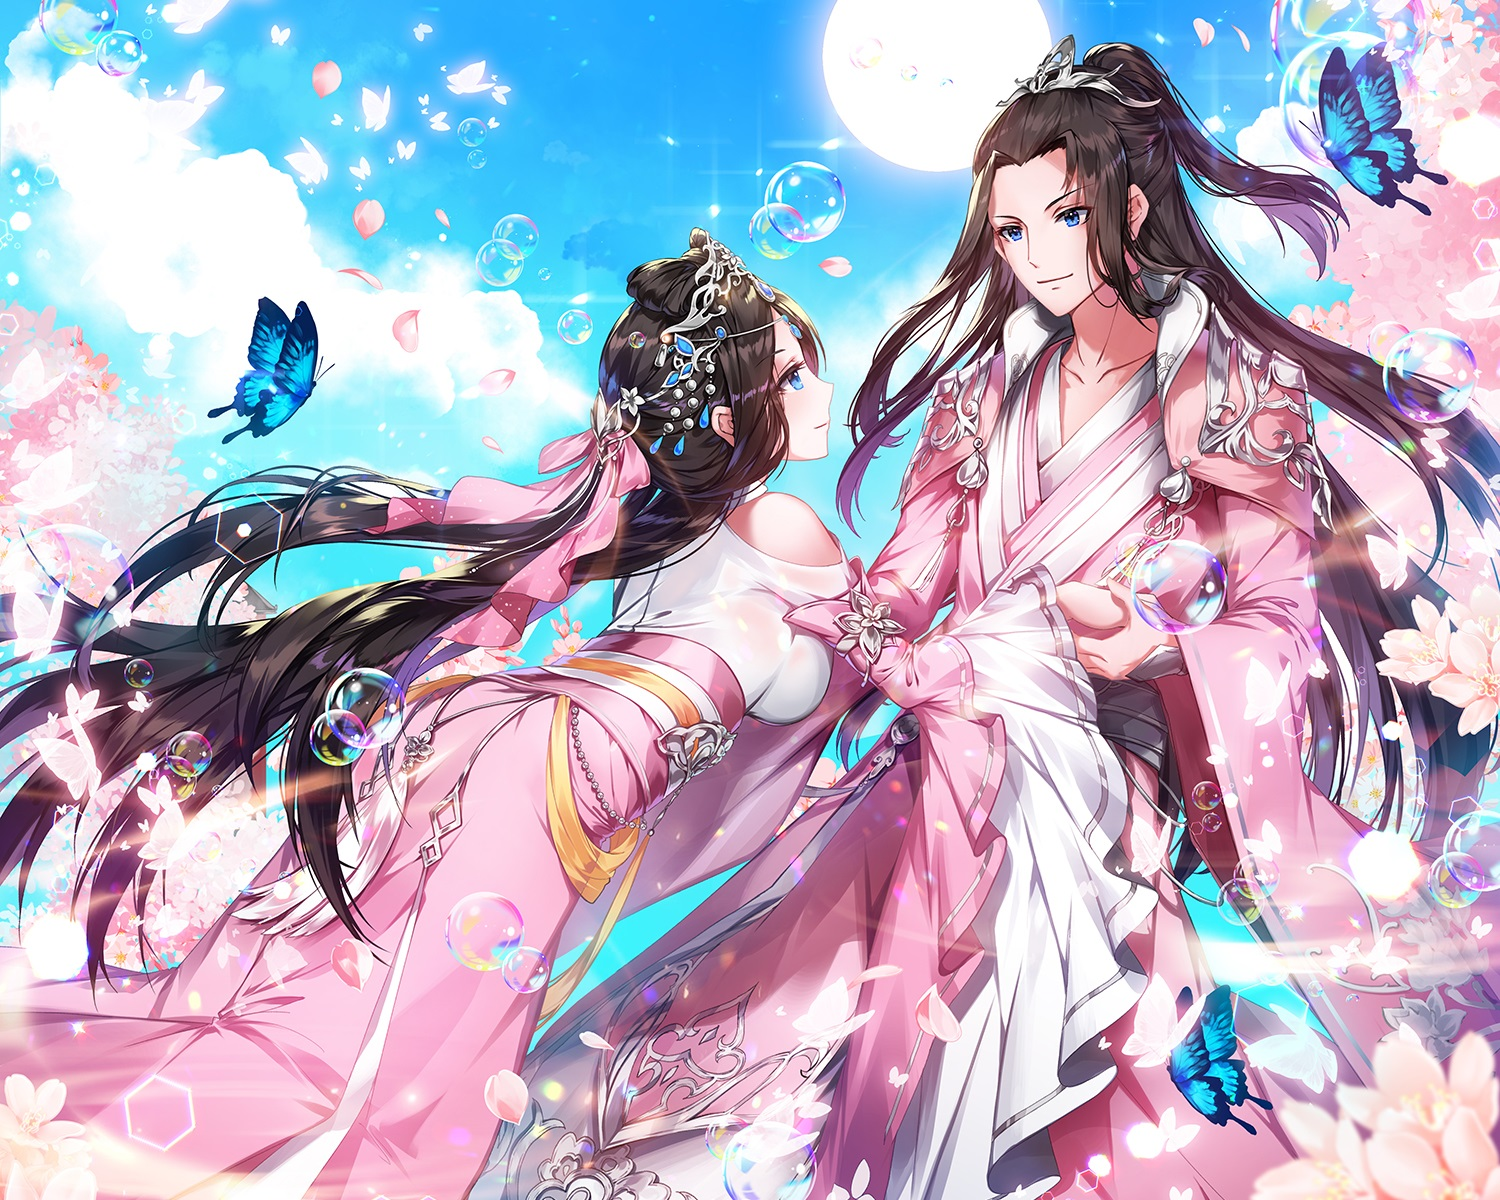 applecaramel_(acaramel) aqua_eyes black_hair bubbles butterfly cherry_blossoms clouds cropped flowers headdress long_hair male petals ponytail sky